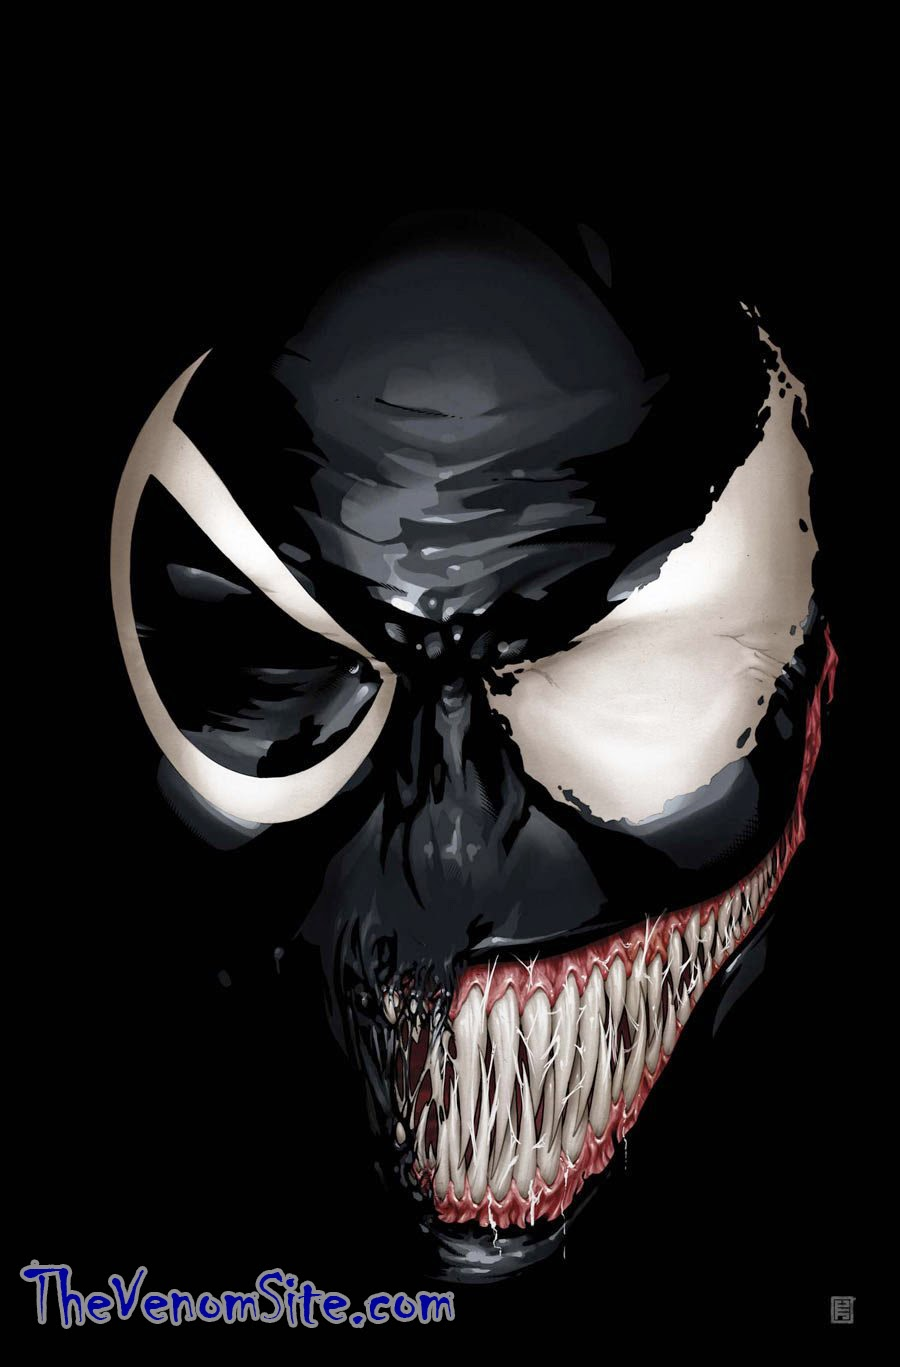 Read the complete Venom comic book series digitally on Comixology for Android and iOS mobile devices